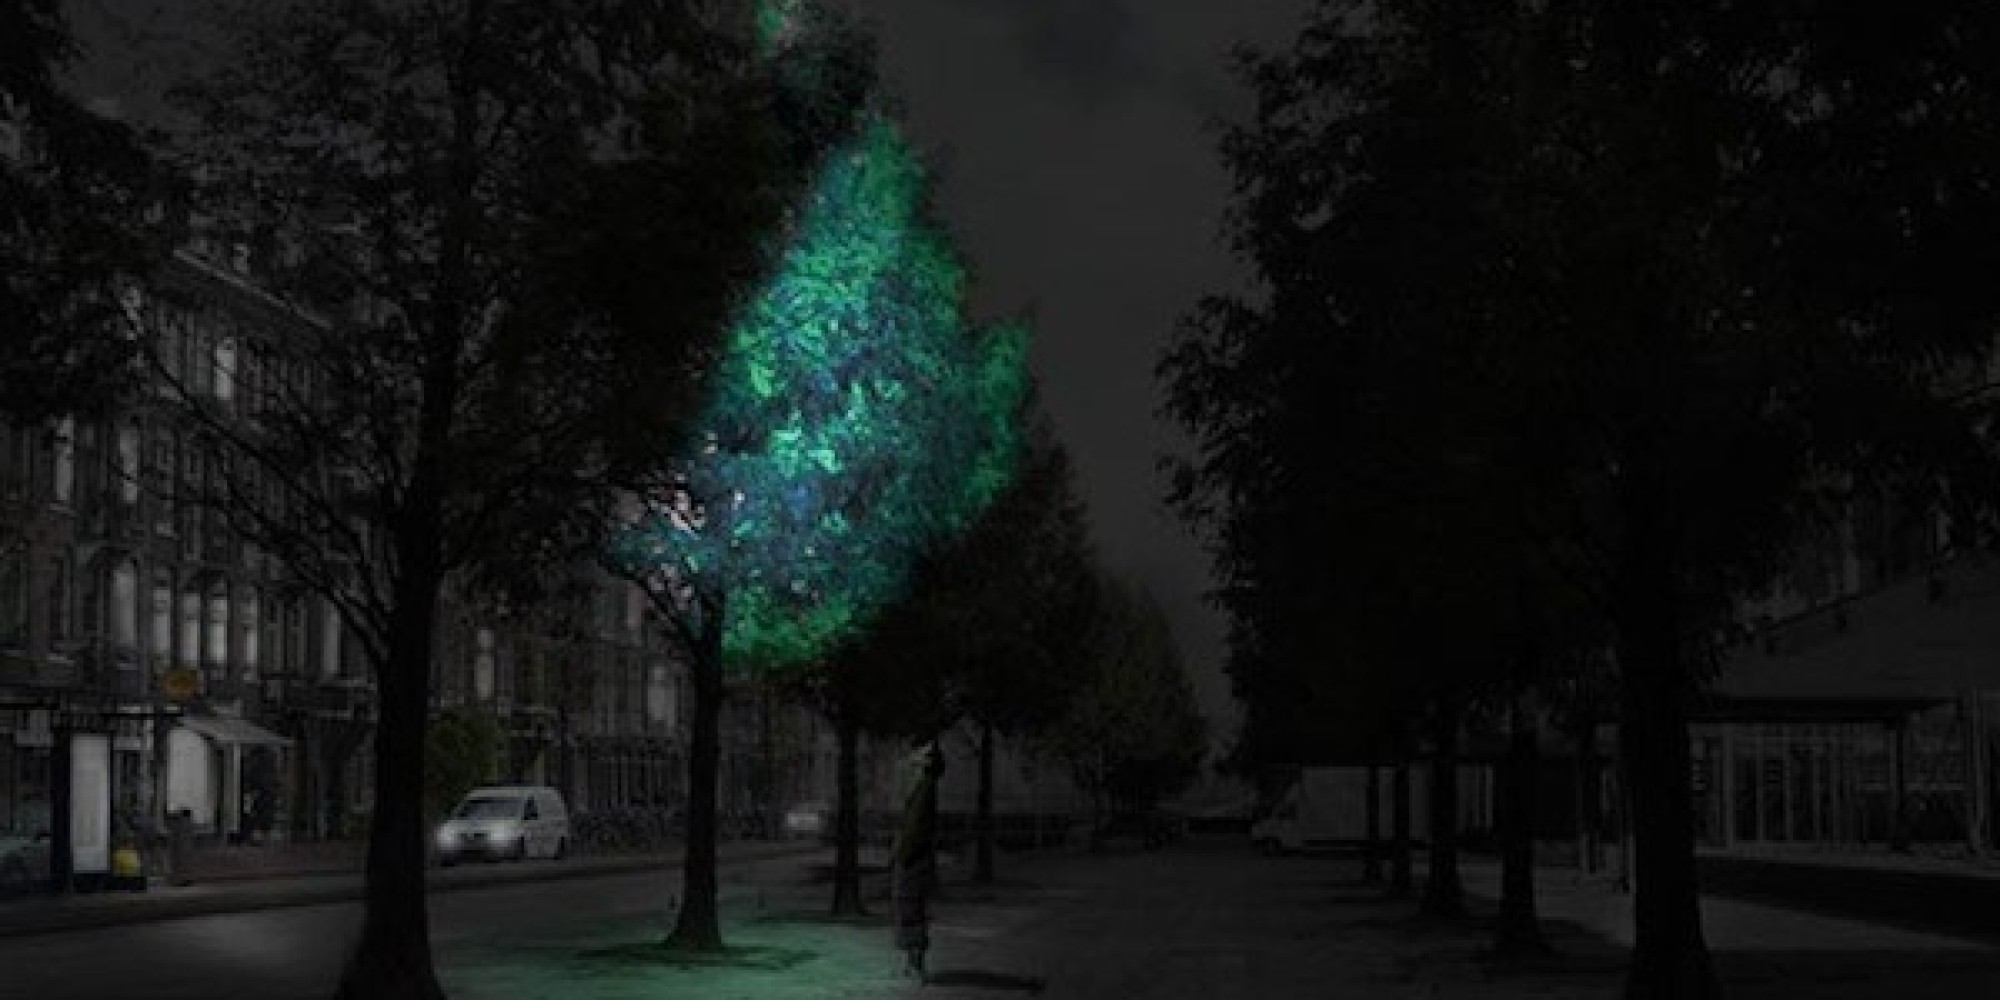 In The Not So Distant Future Glow In The Dark Trees Could